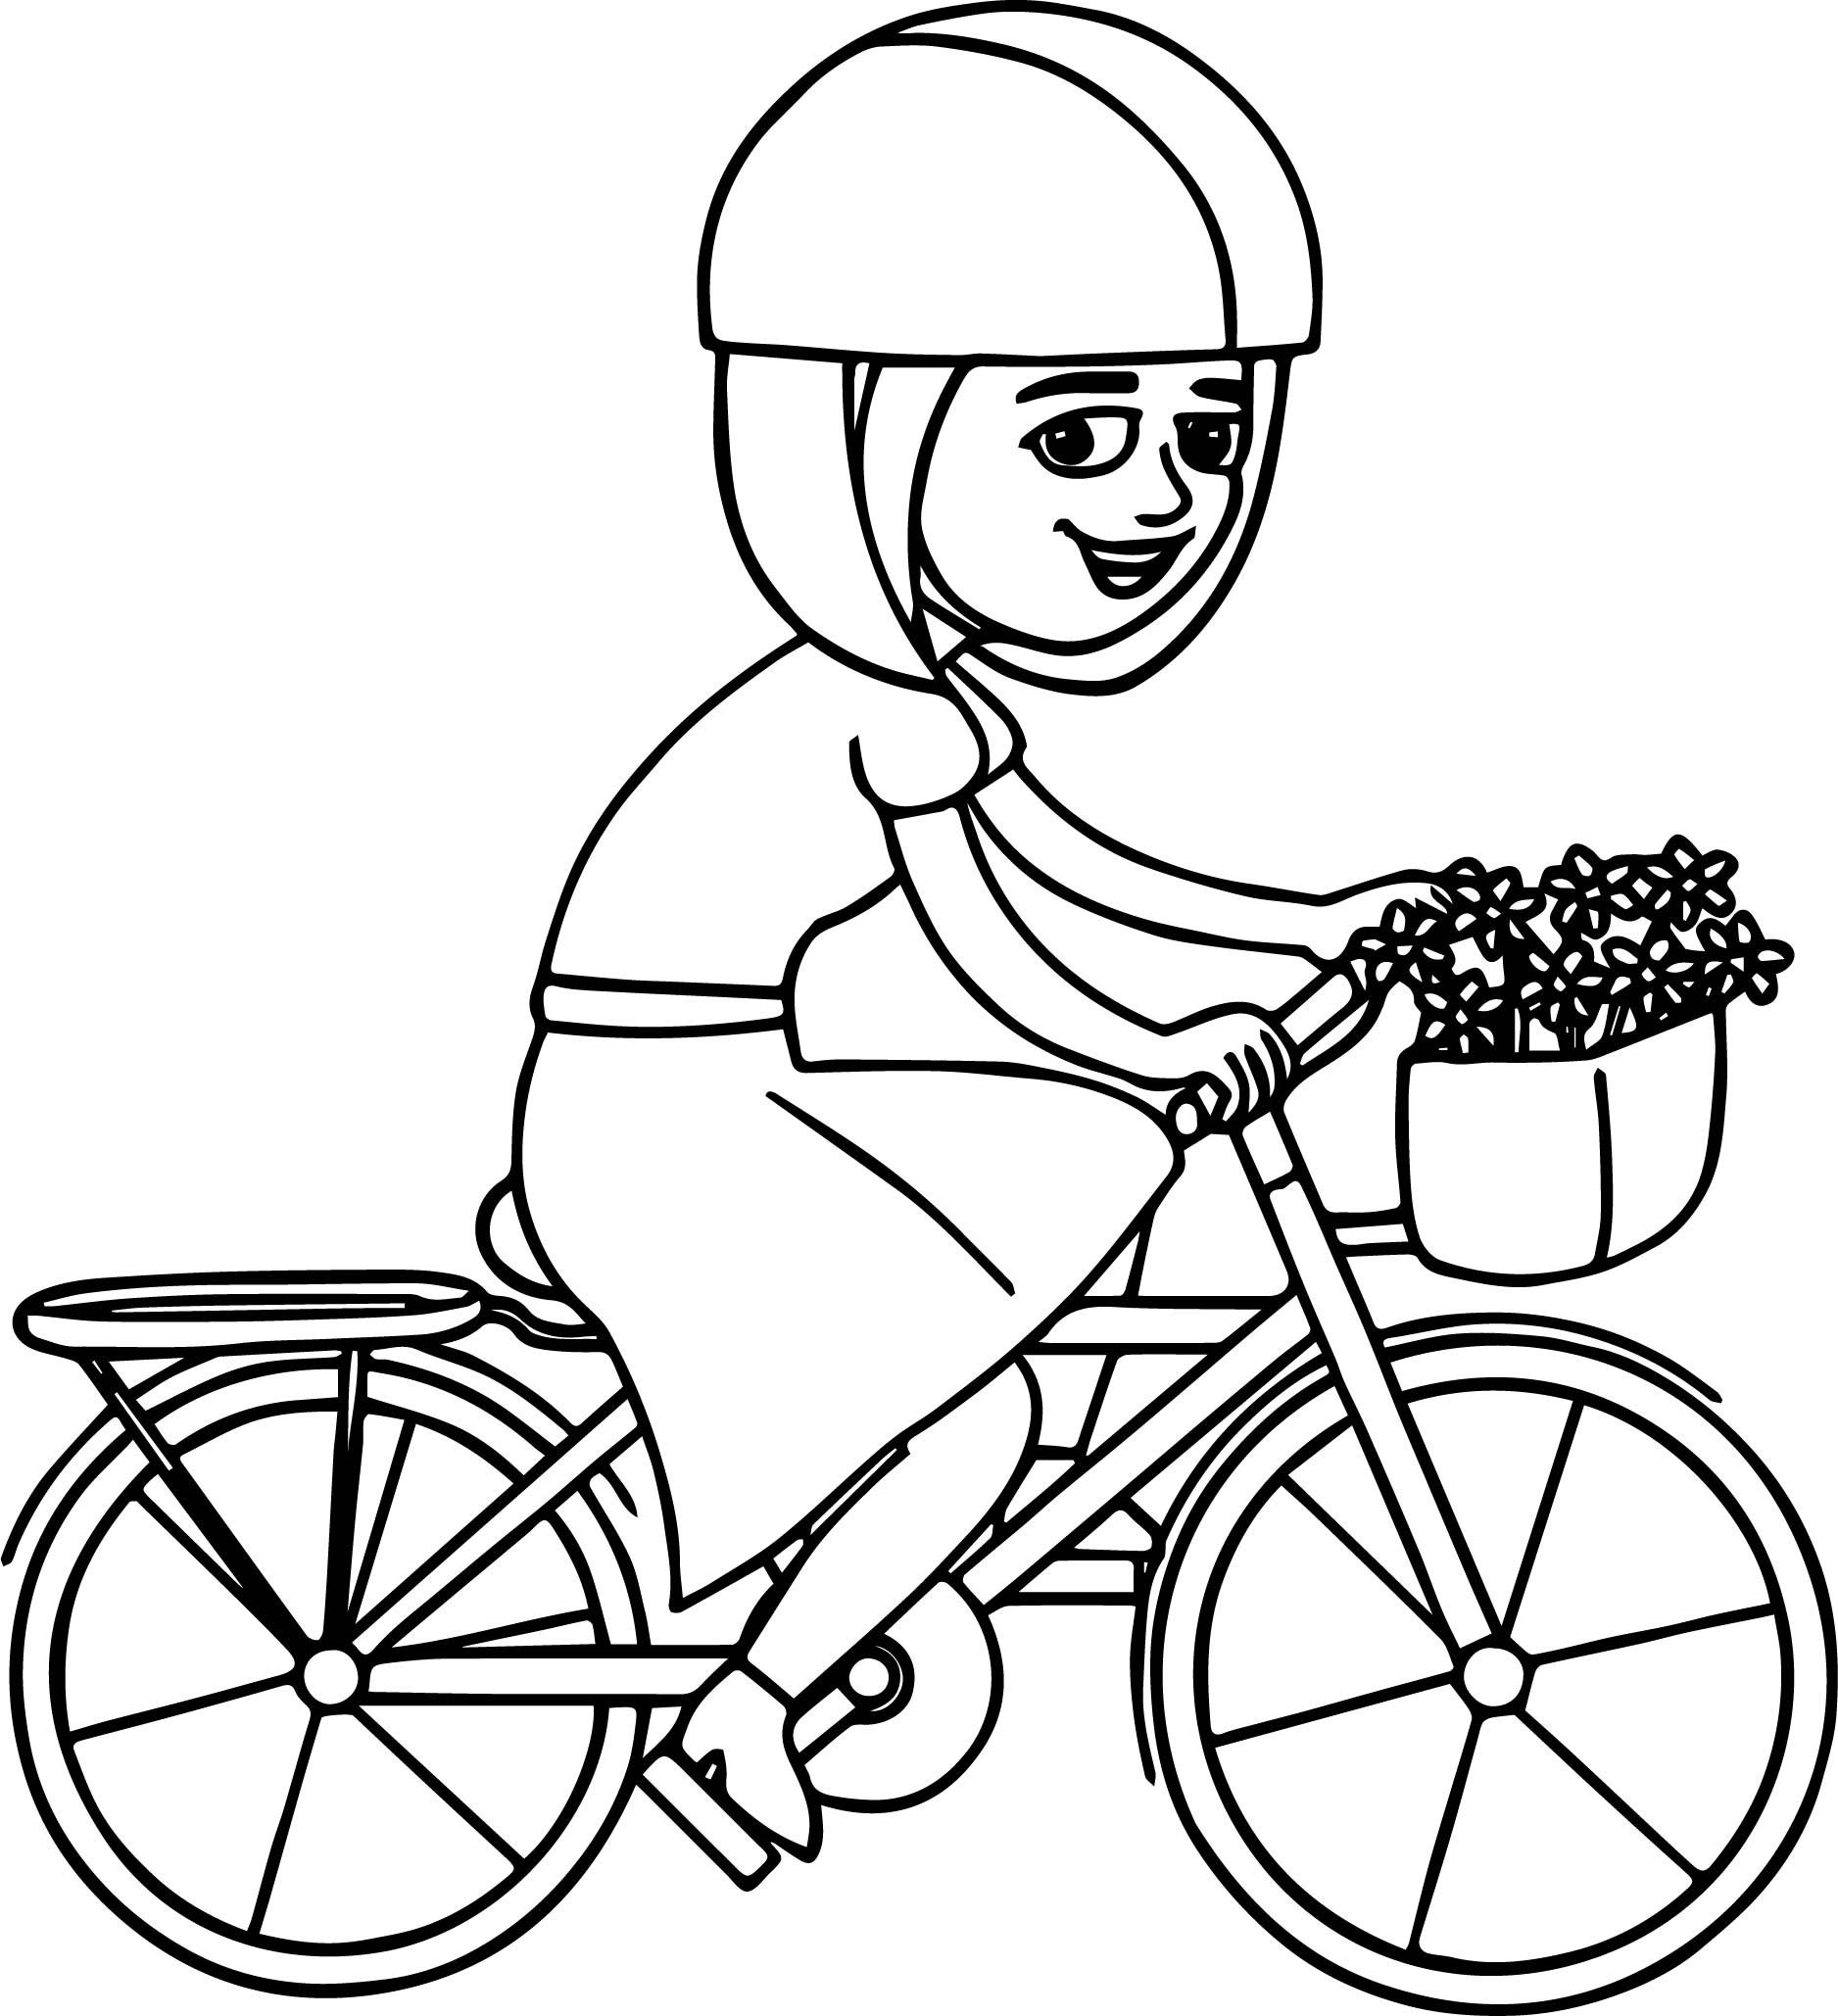 Bike drawing for kids at free for for Coloring pages bikes